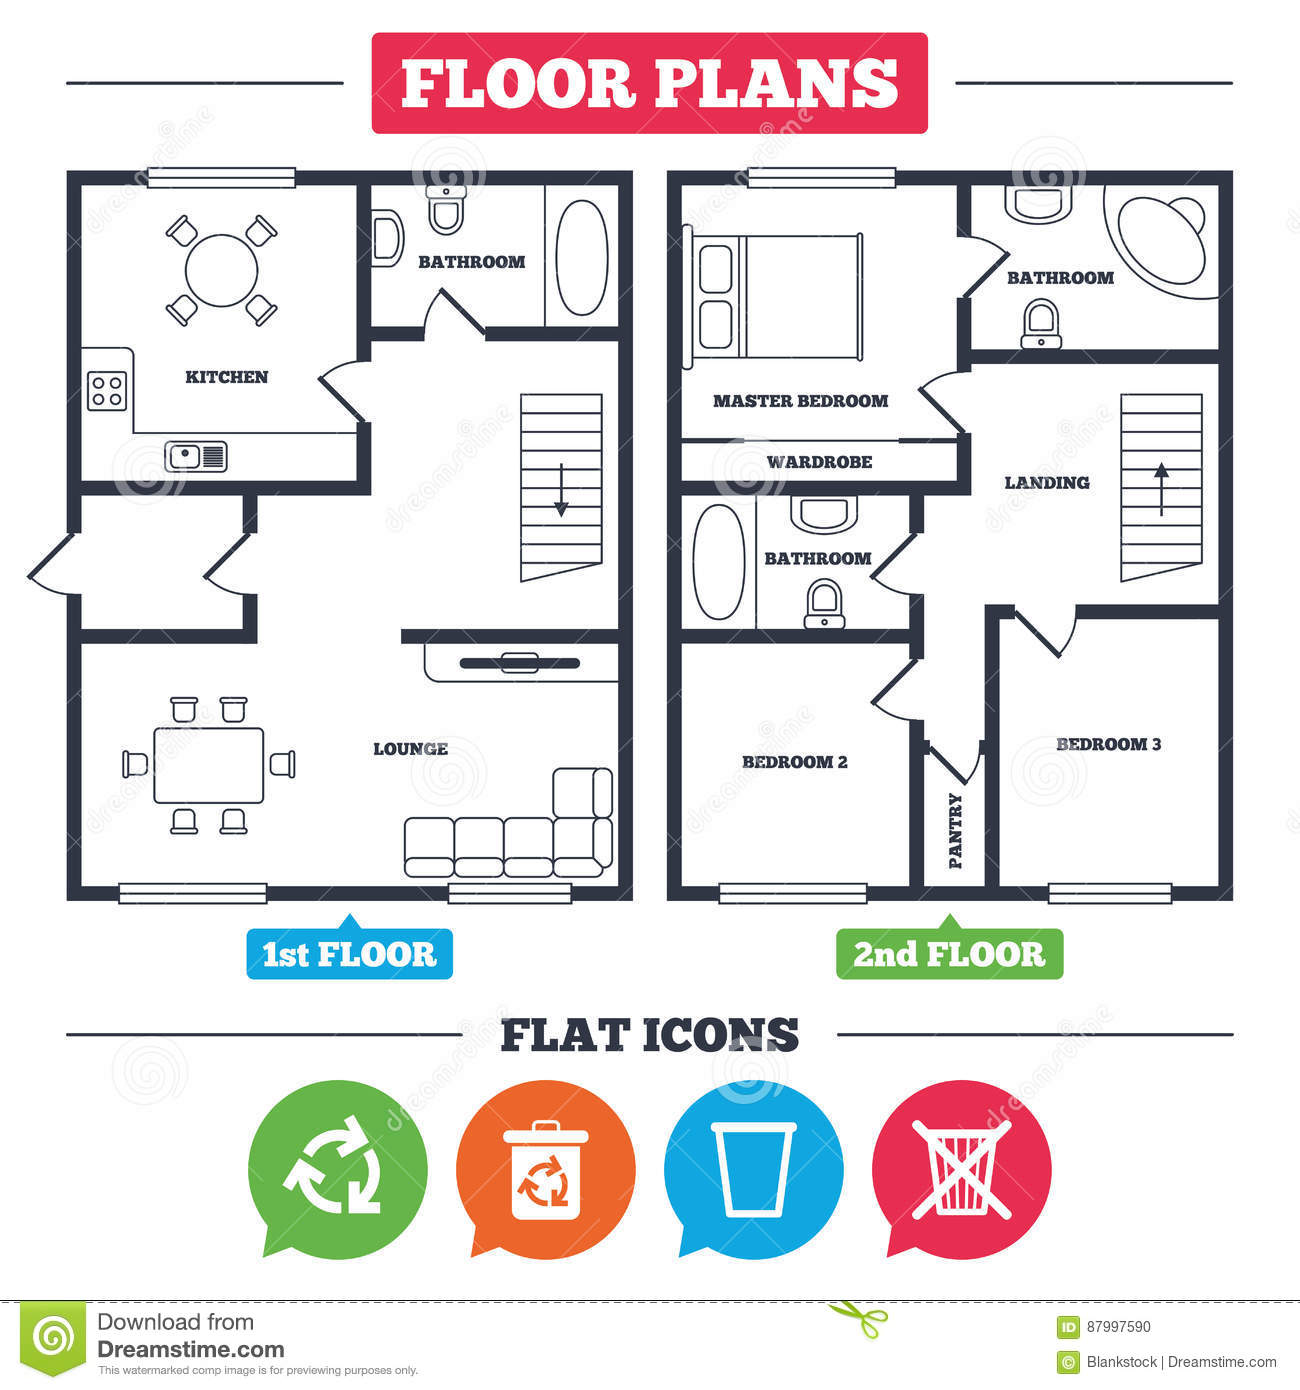 House plan symbols house plan 2017 for How to read a floor plan symbols